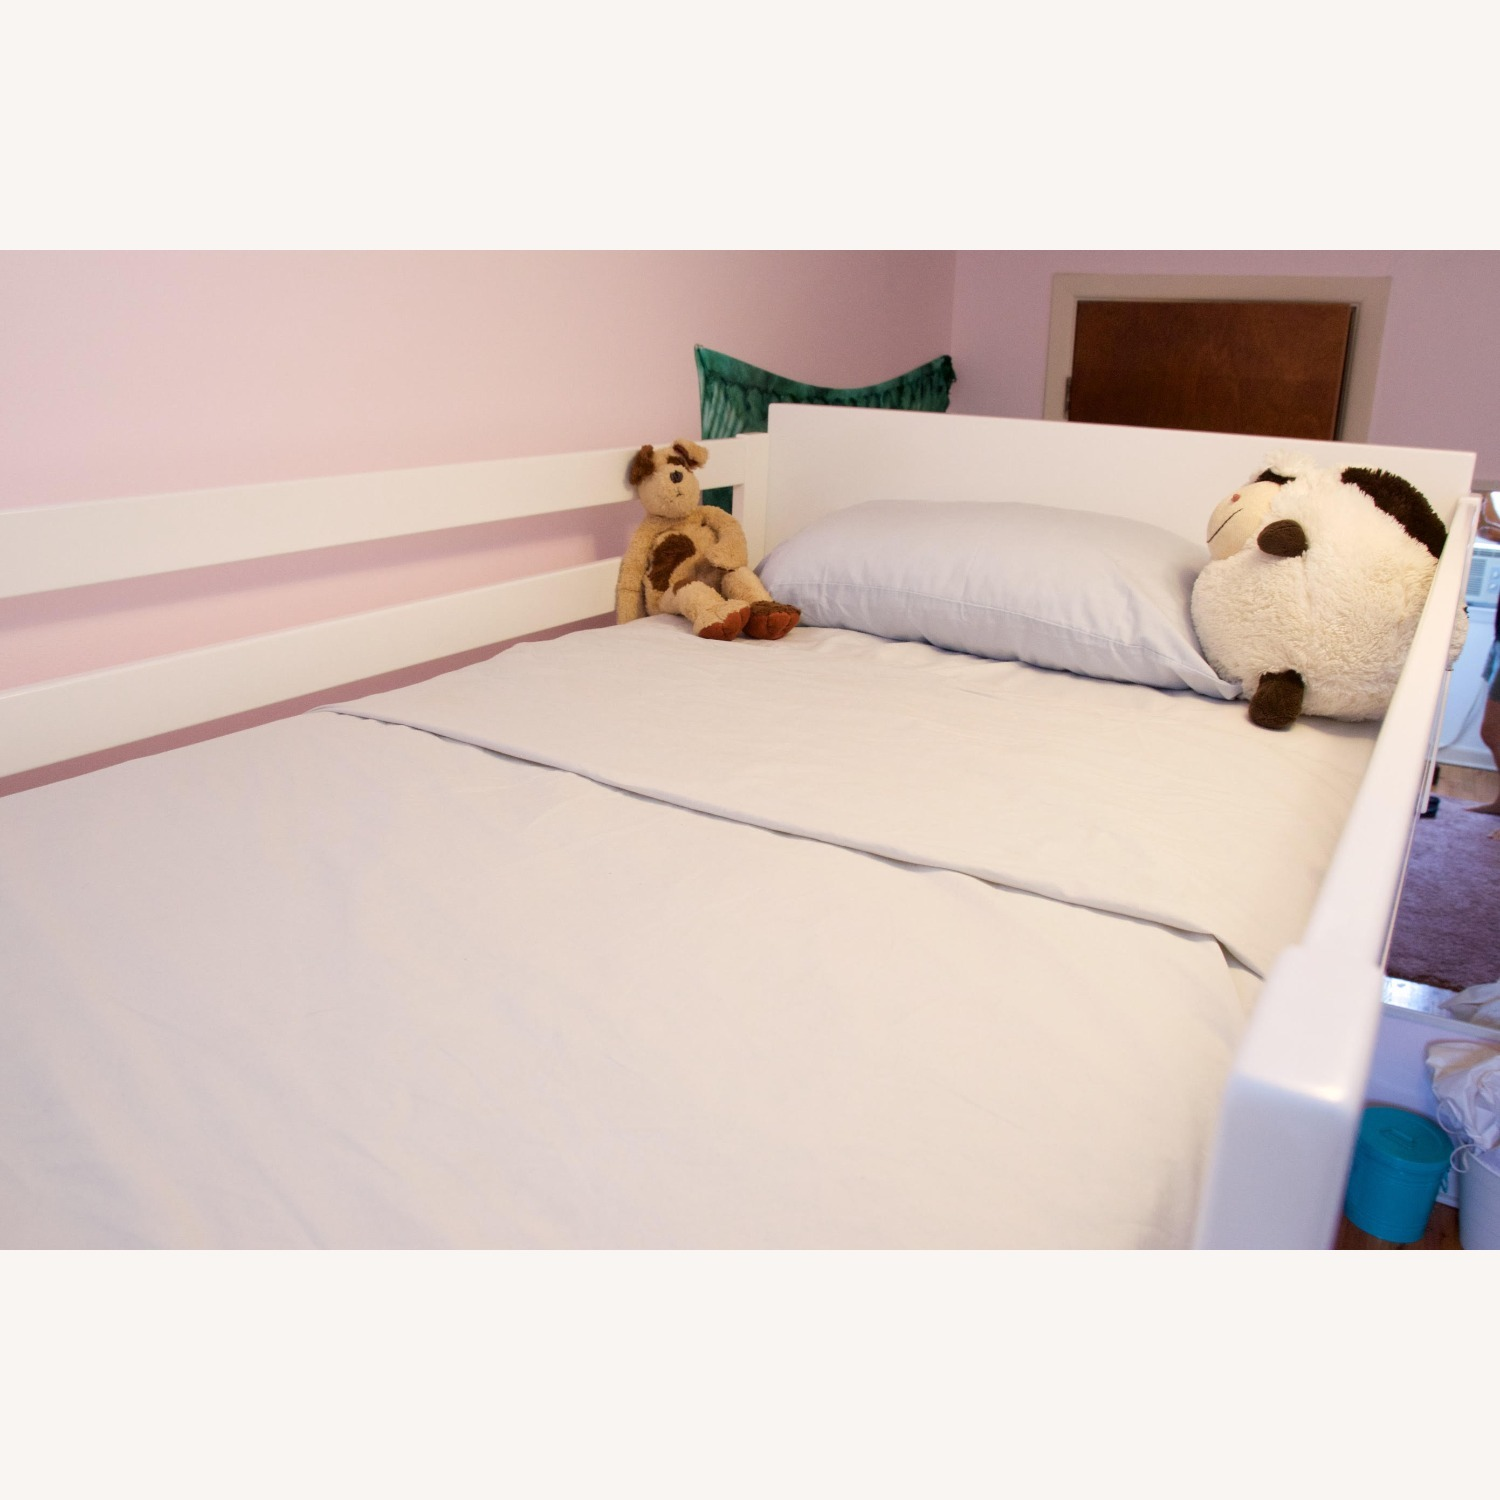 Room & Board White Bunk Bed - image-5